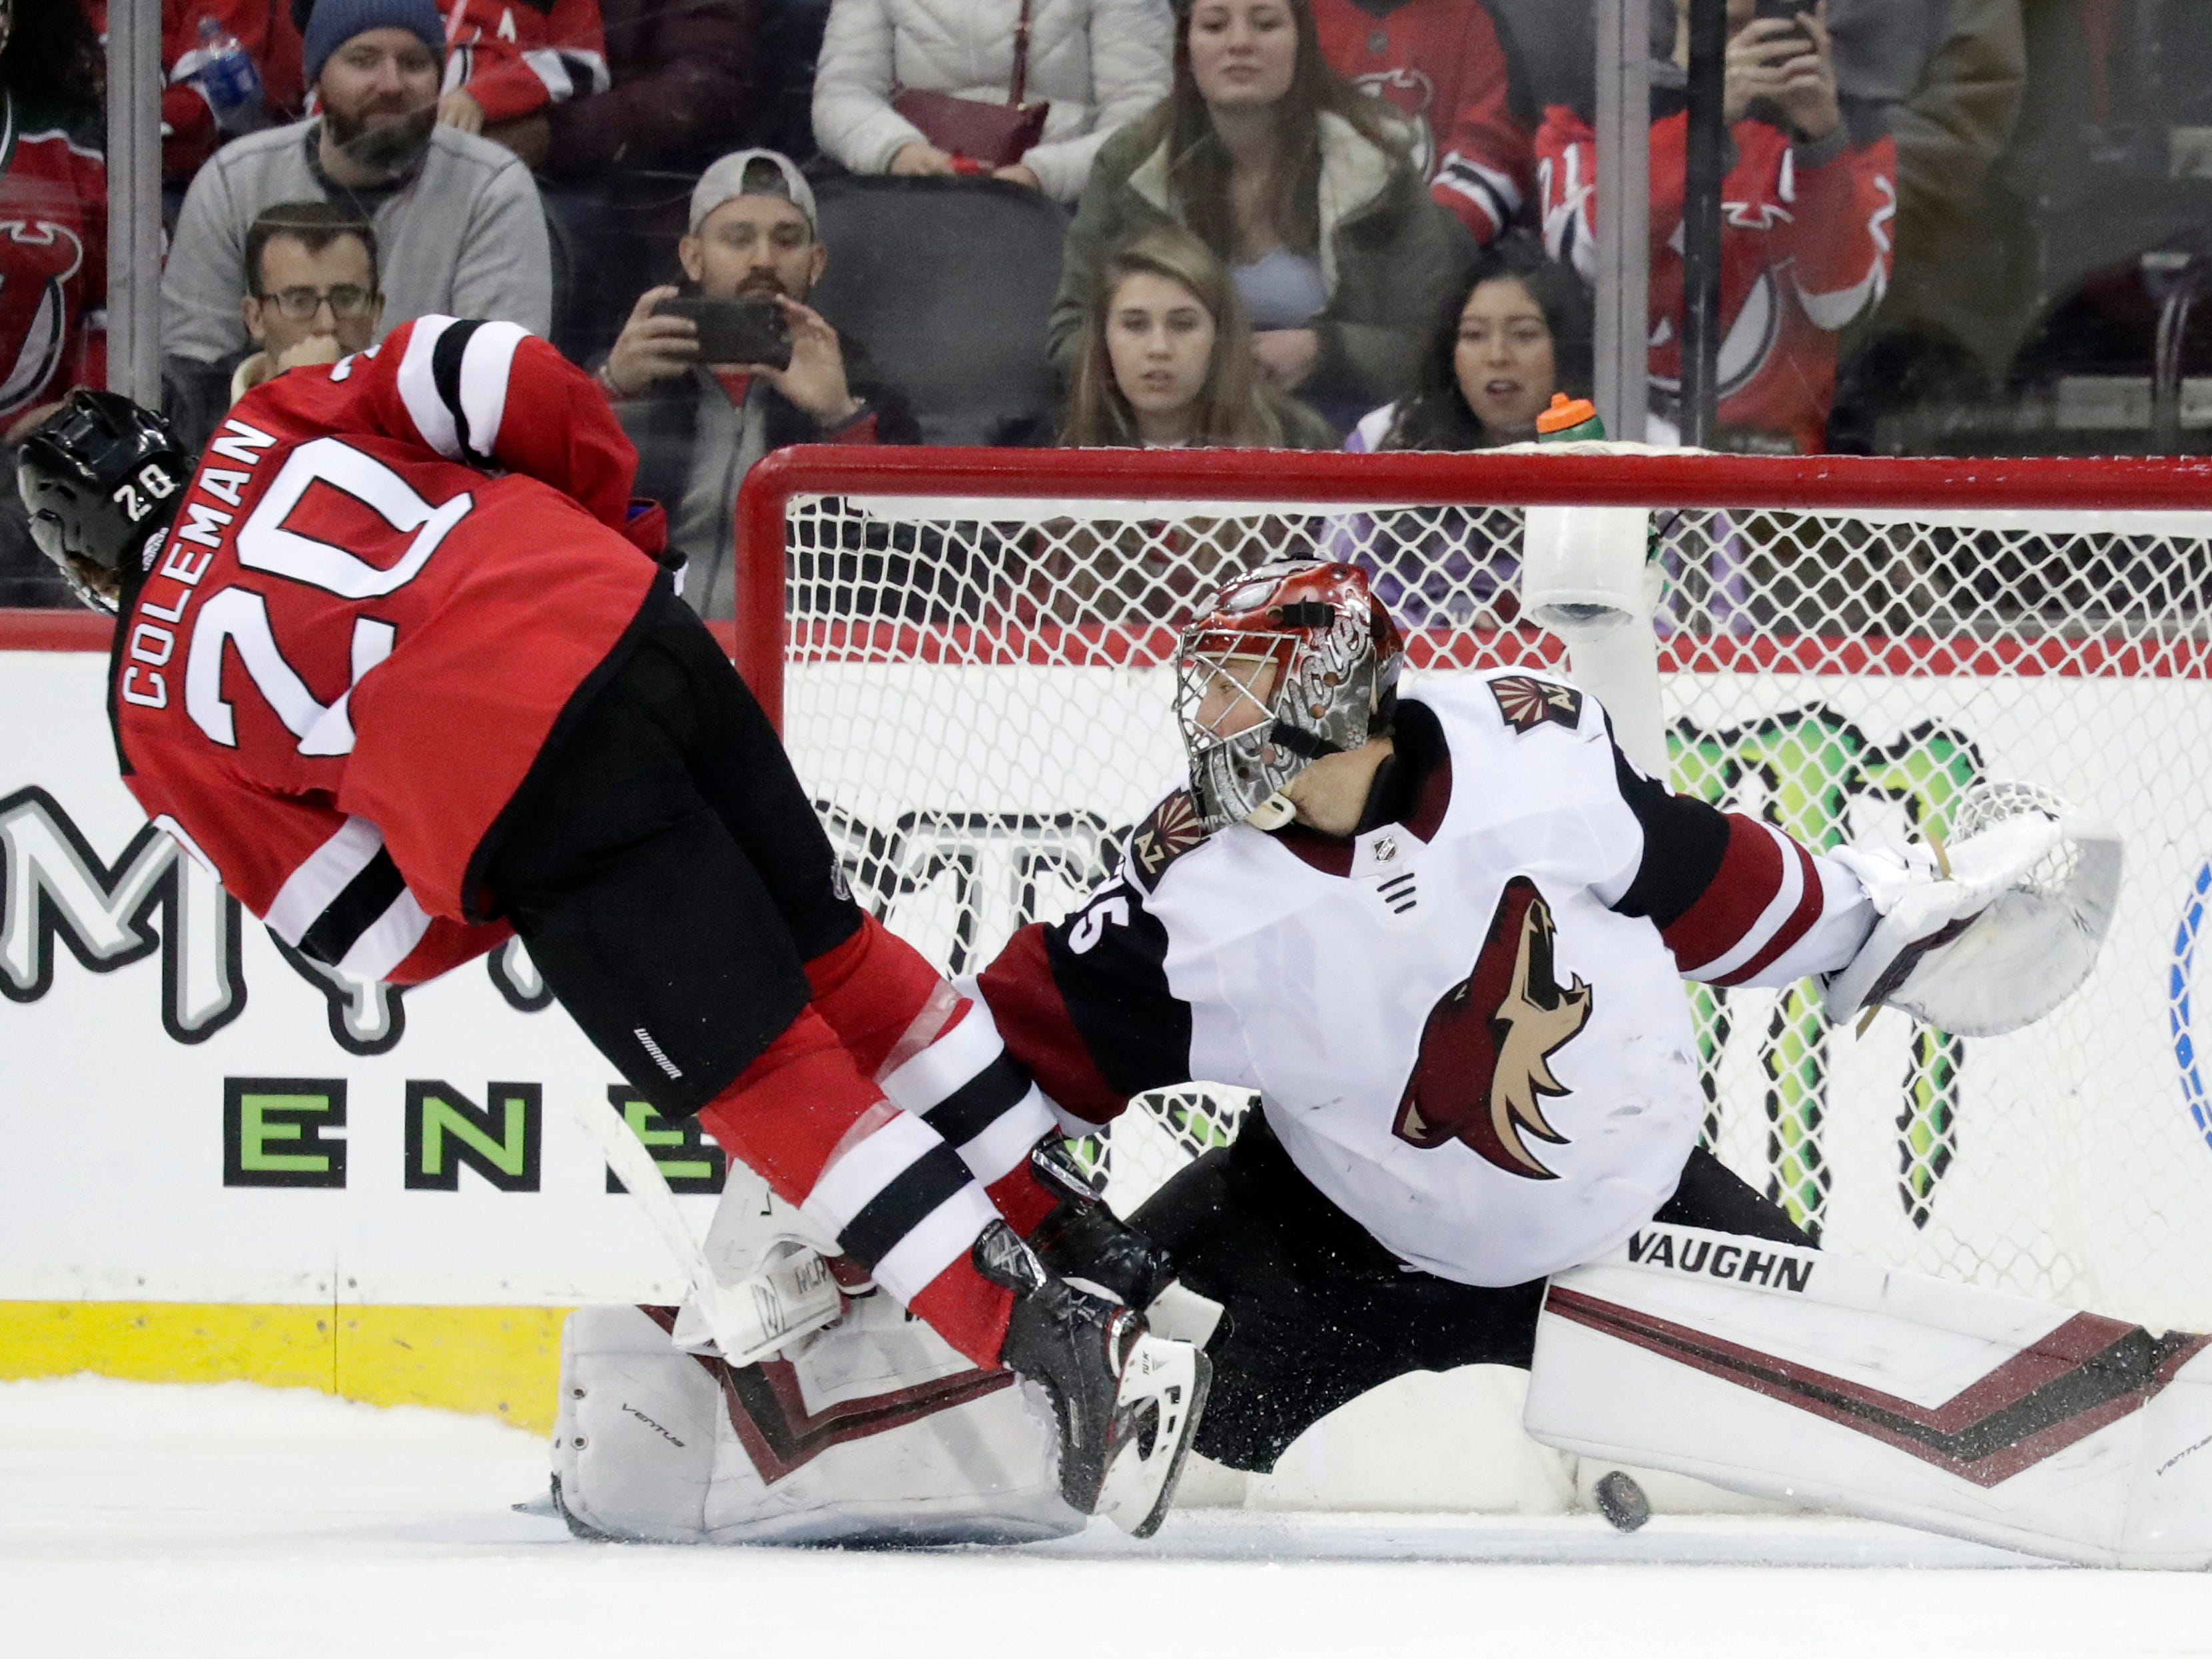 New Jersey Devils center Blake Coleman (20) trips over Arizona Coyotes goaltender Darcy Kuemper (35) while scoring during a shootout in an NHL hockey game, Saturday, March 23, 2019, in Newark, N.J. The Devils on 2-1 in a shootout.